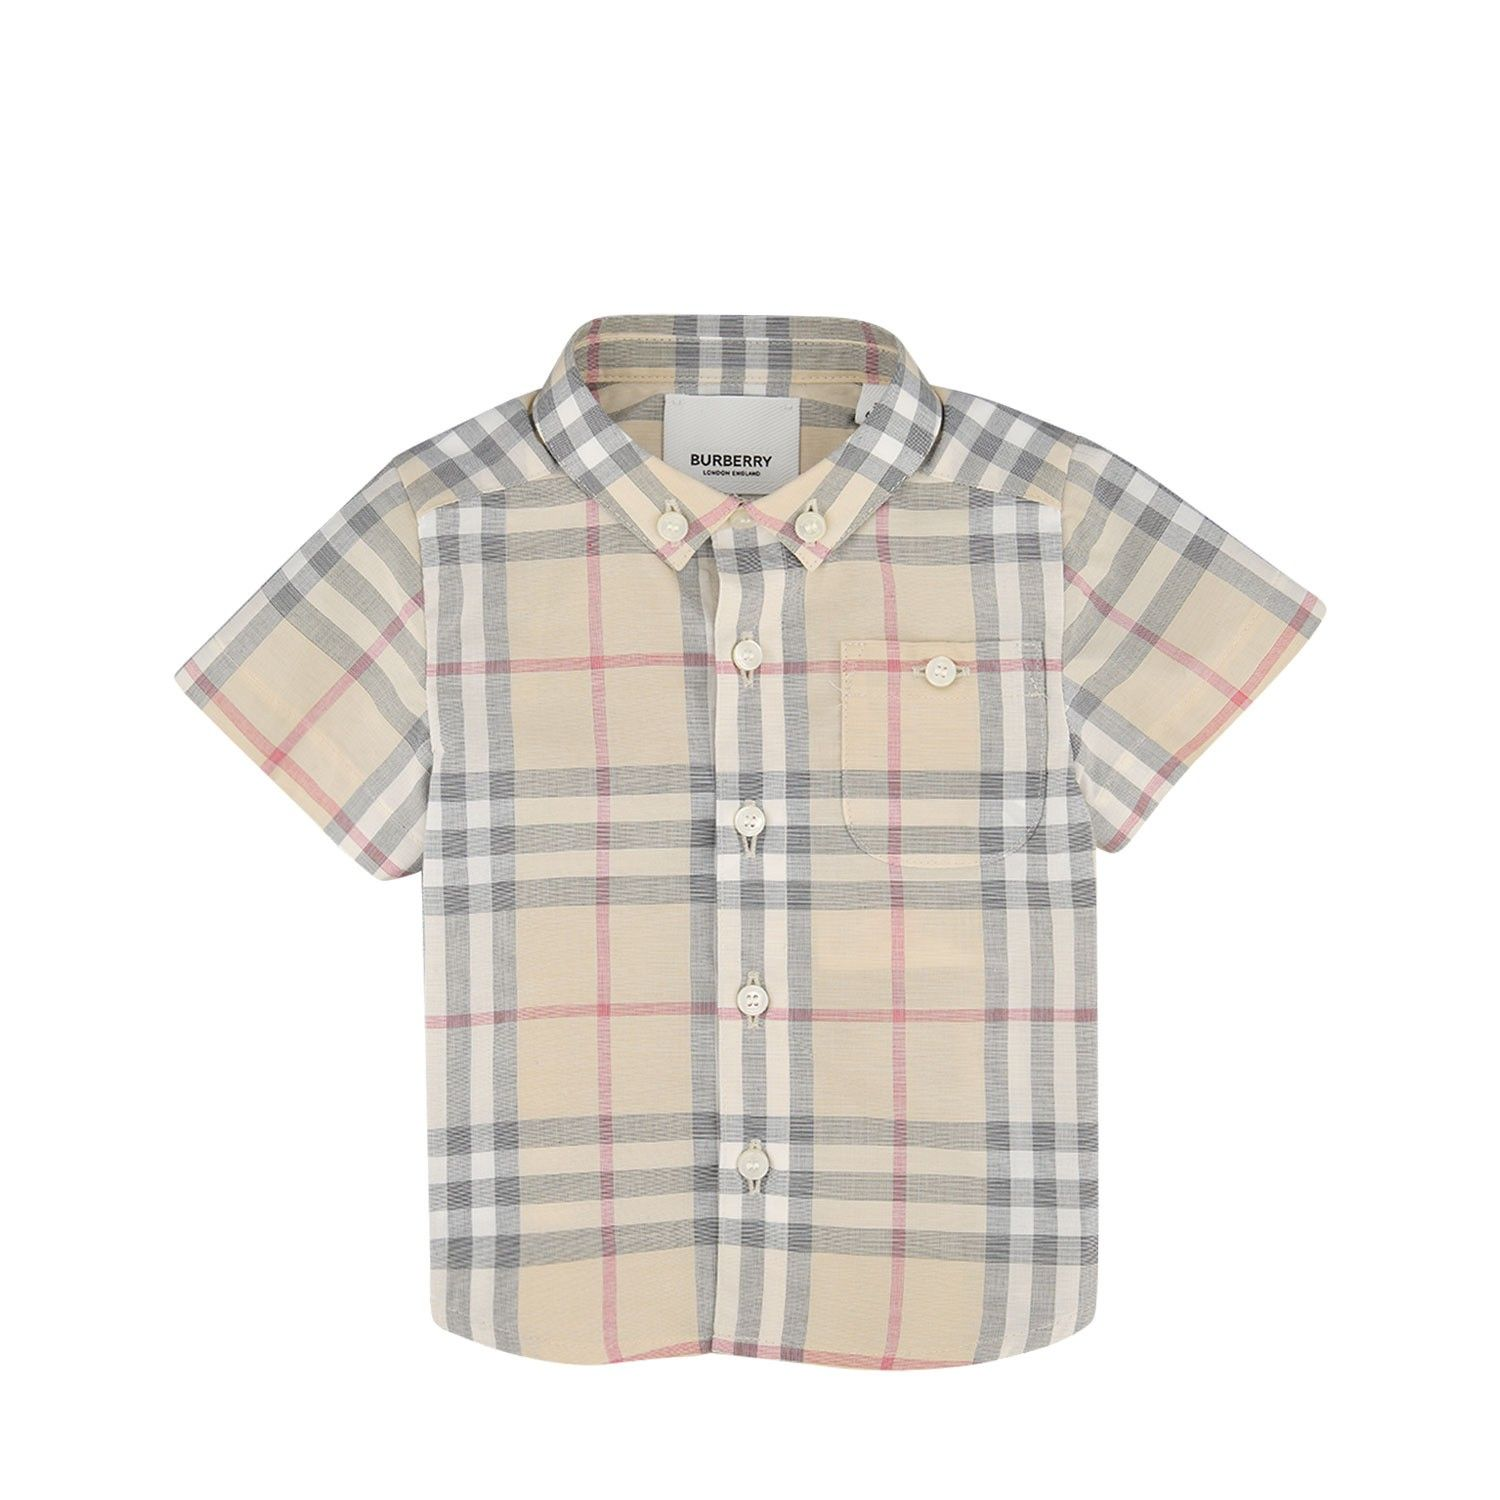 Picture of Burberry 8022366 baby blouse light beige